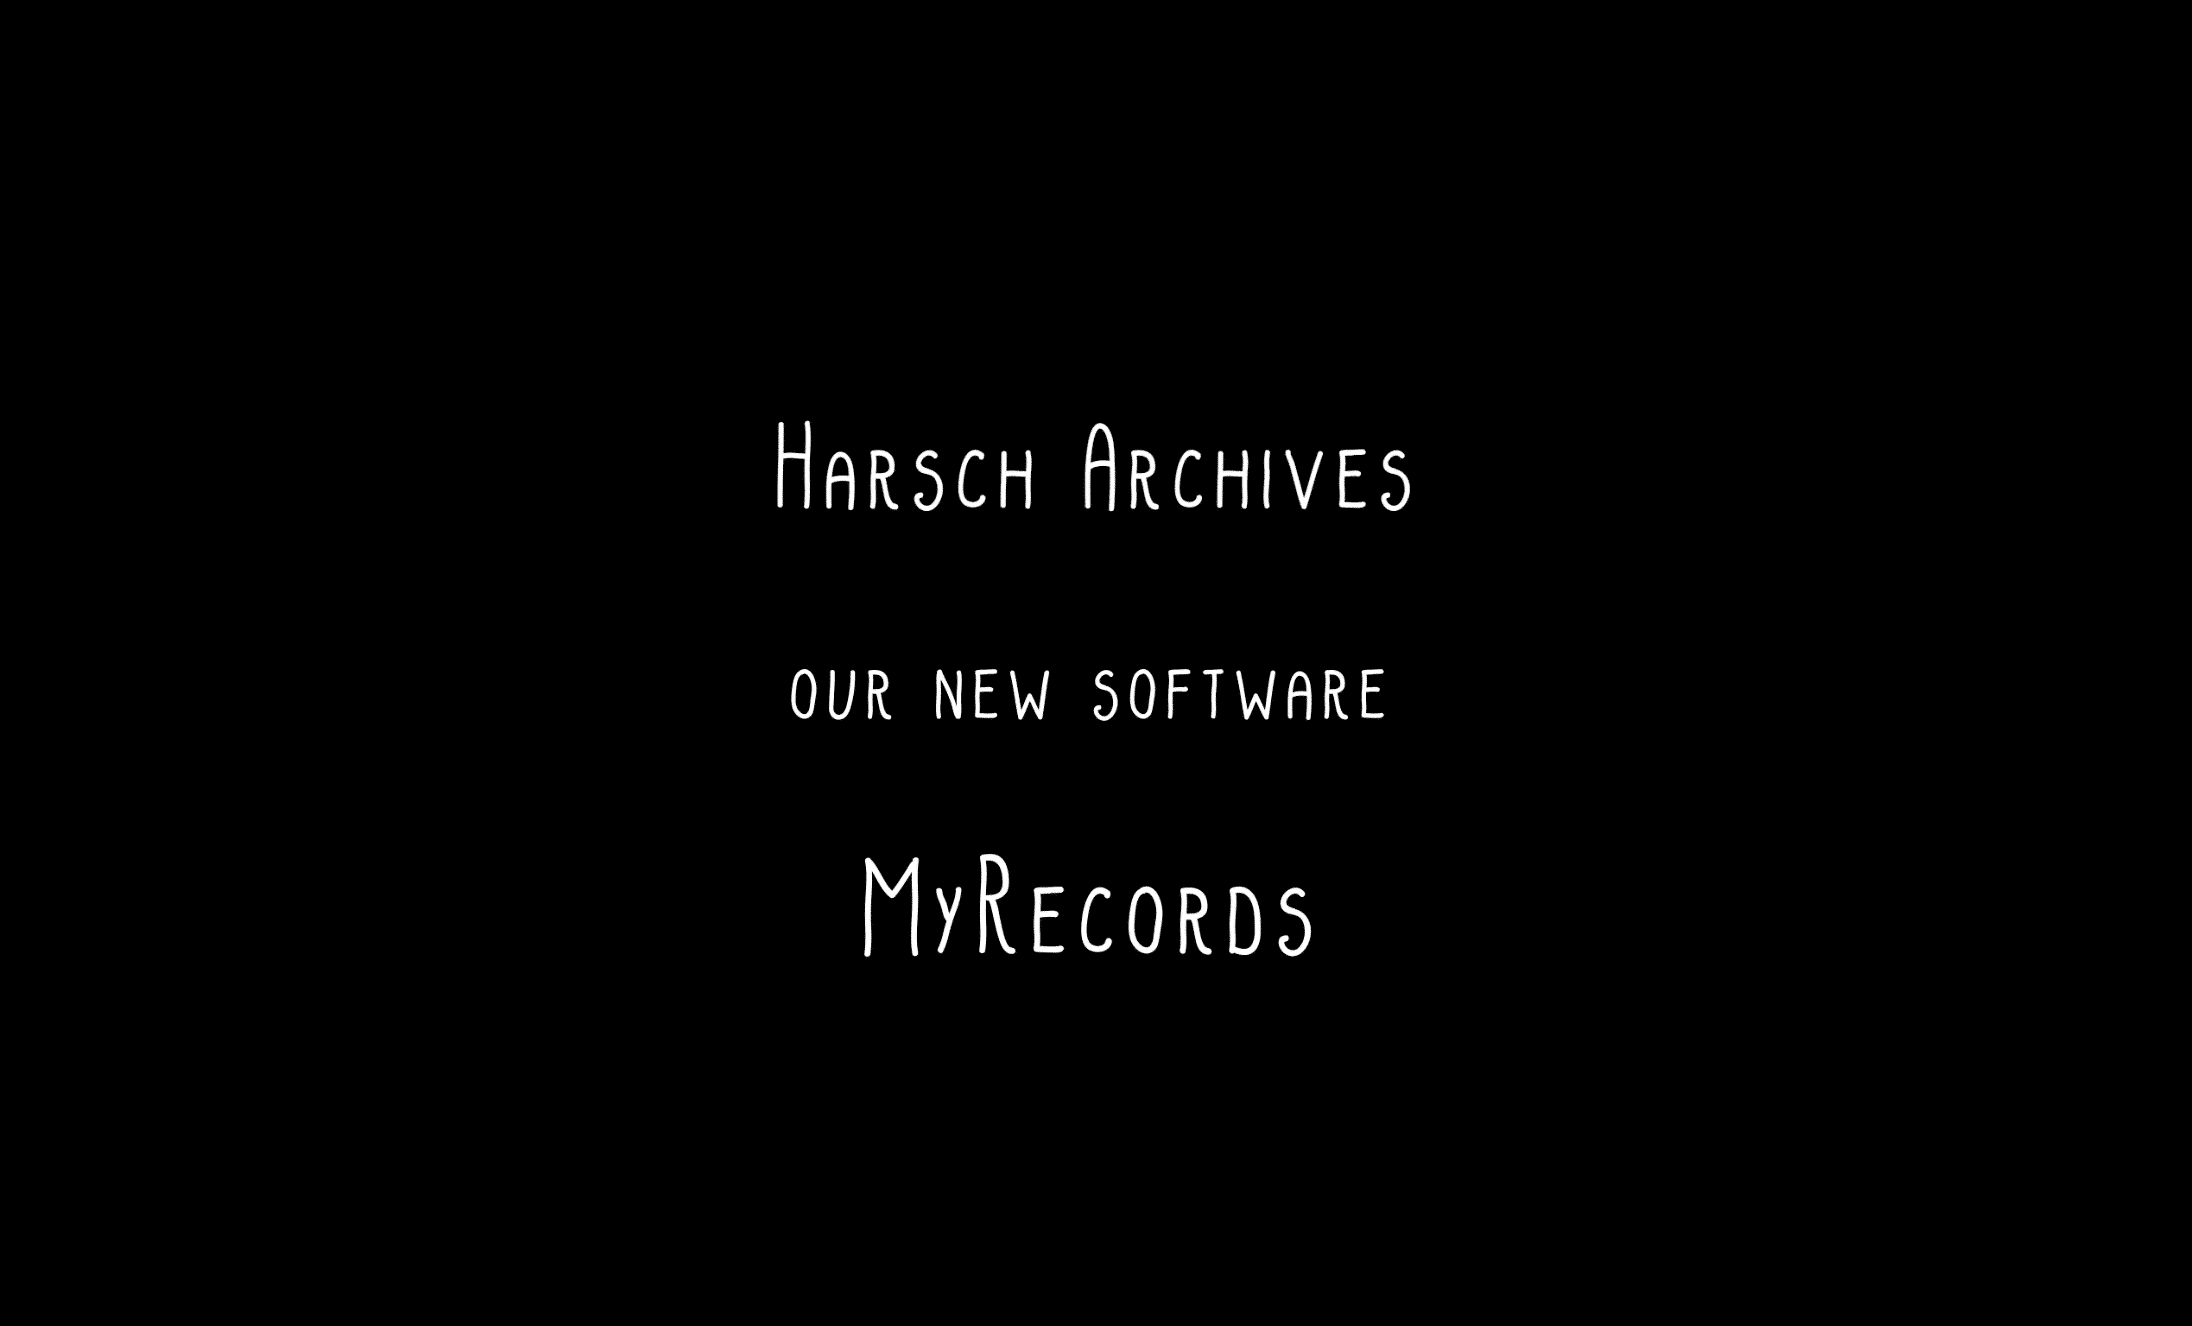 Harsch Online Archivmanagement neuen plattform.